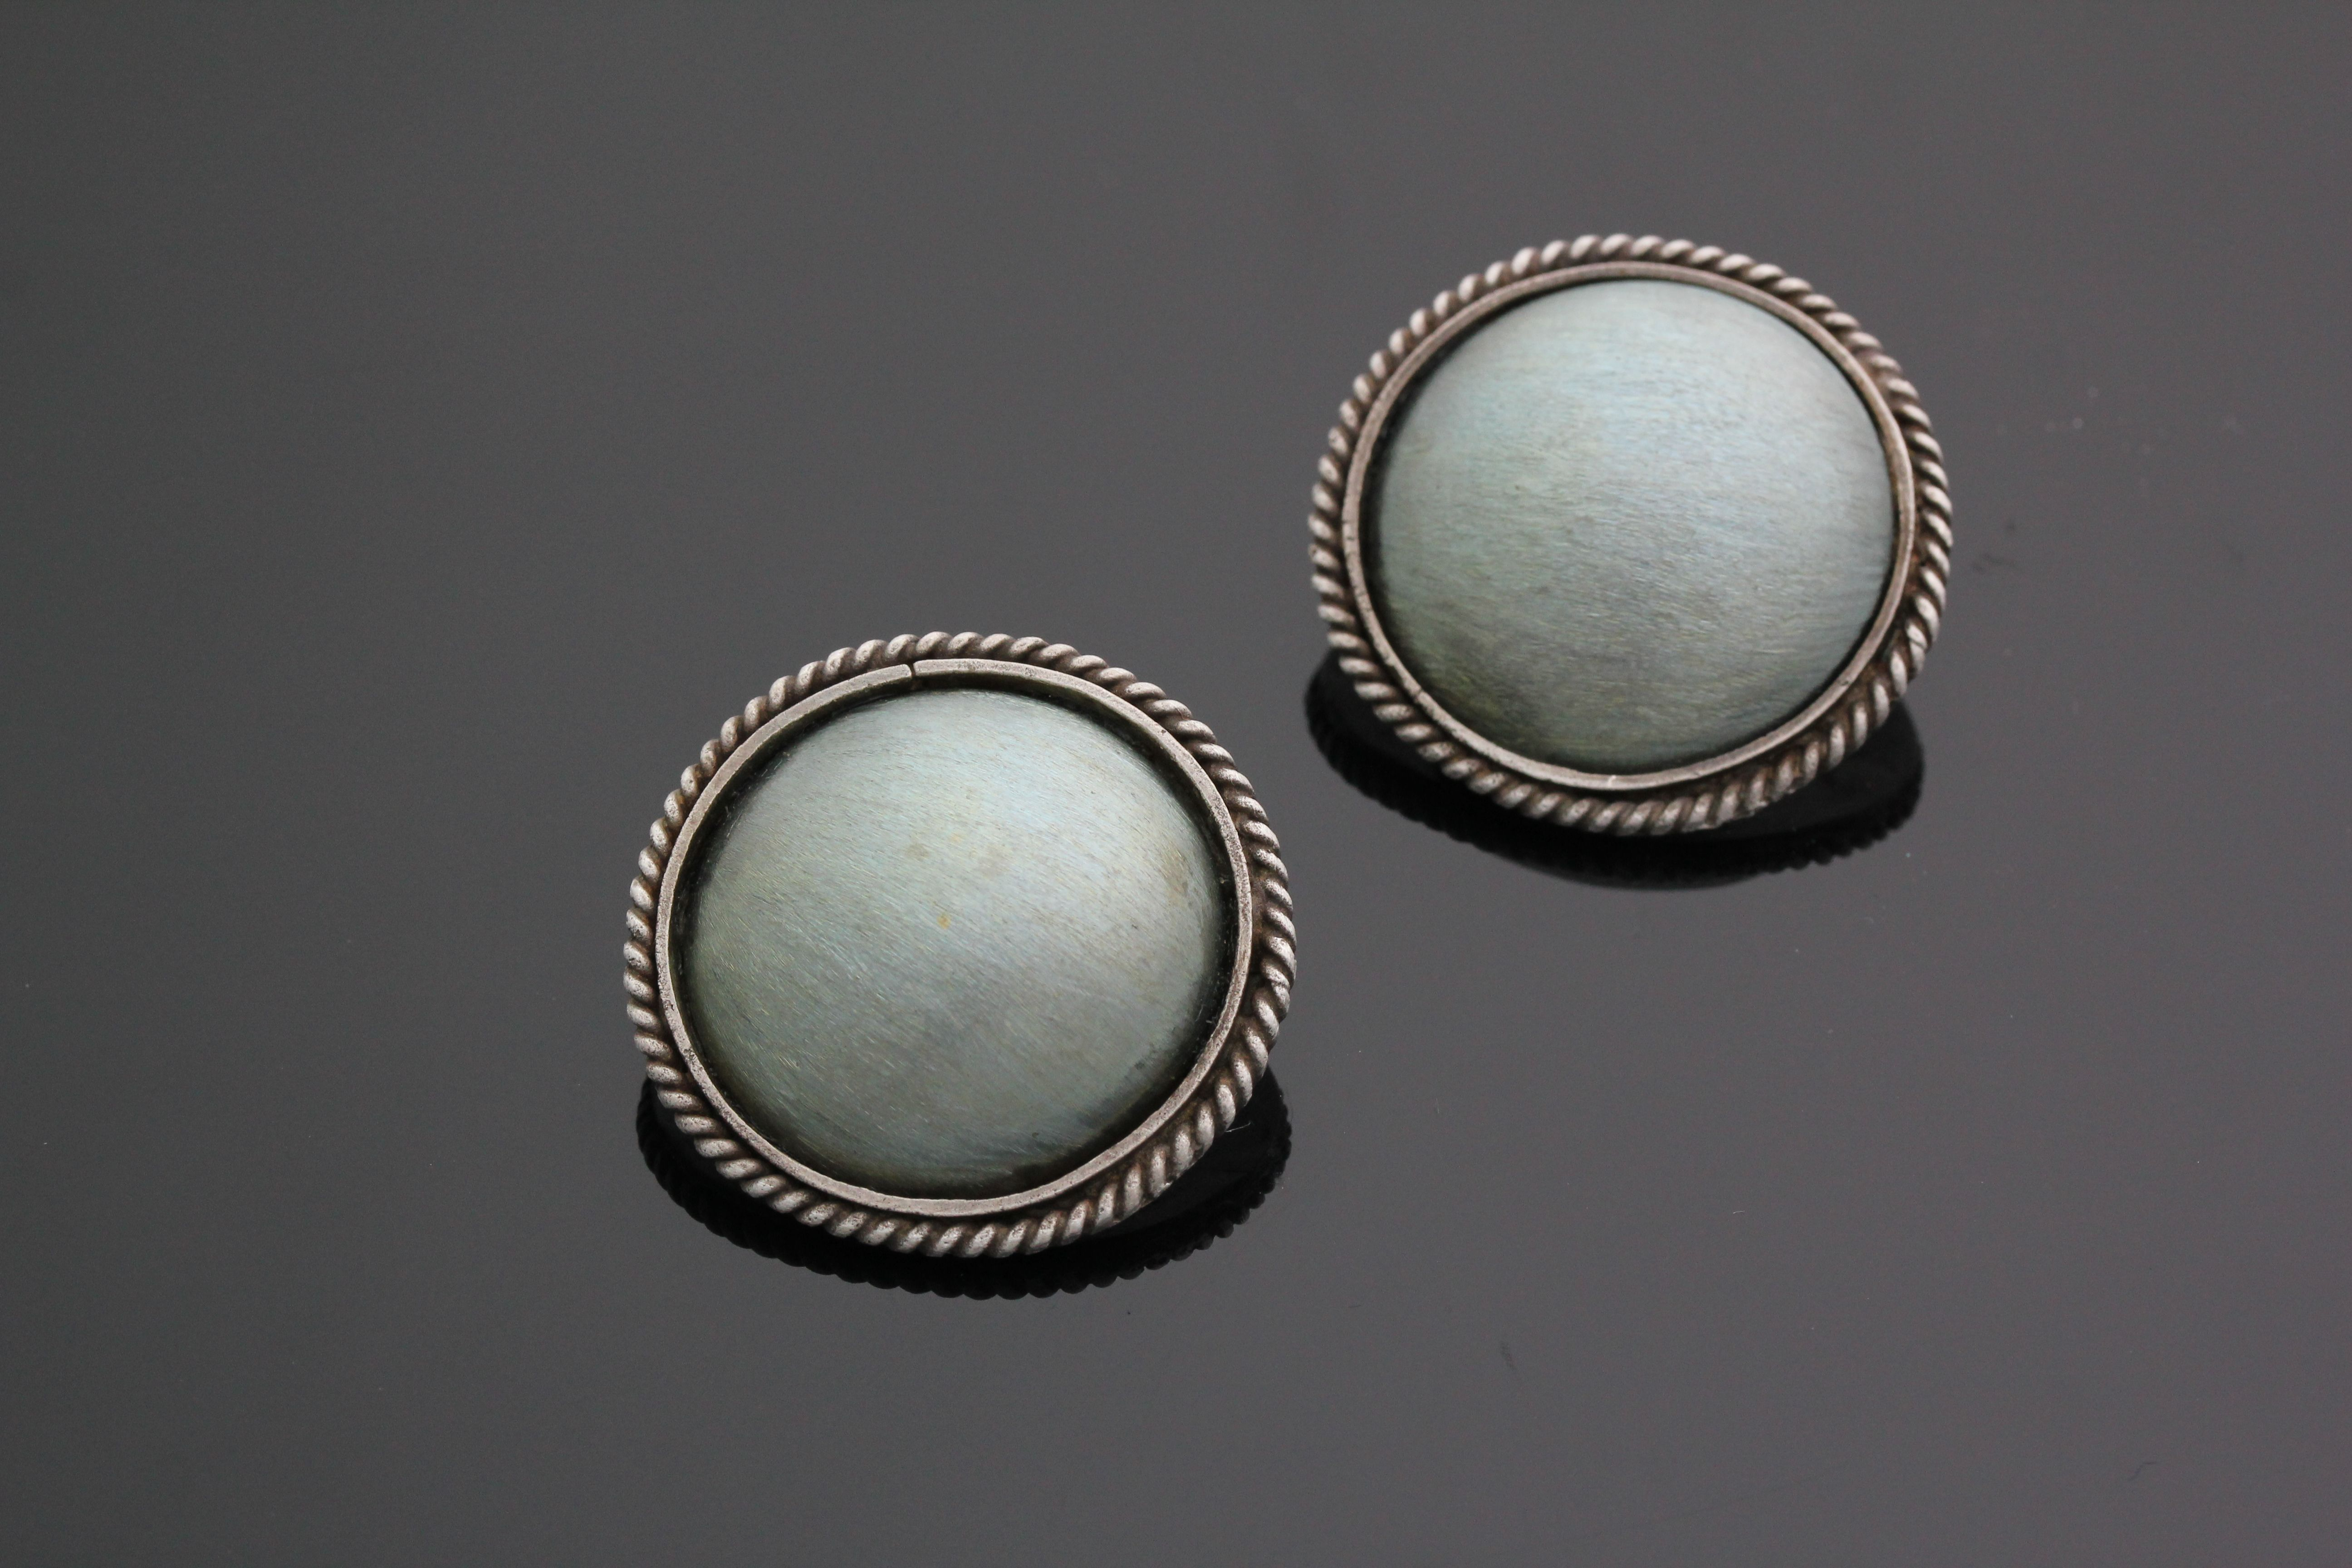 Earring | by Keziah Ko | Handmade from Oxidized 92.5 Silver and Titanium.